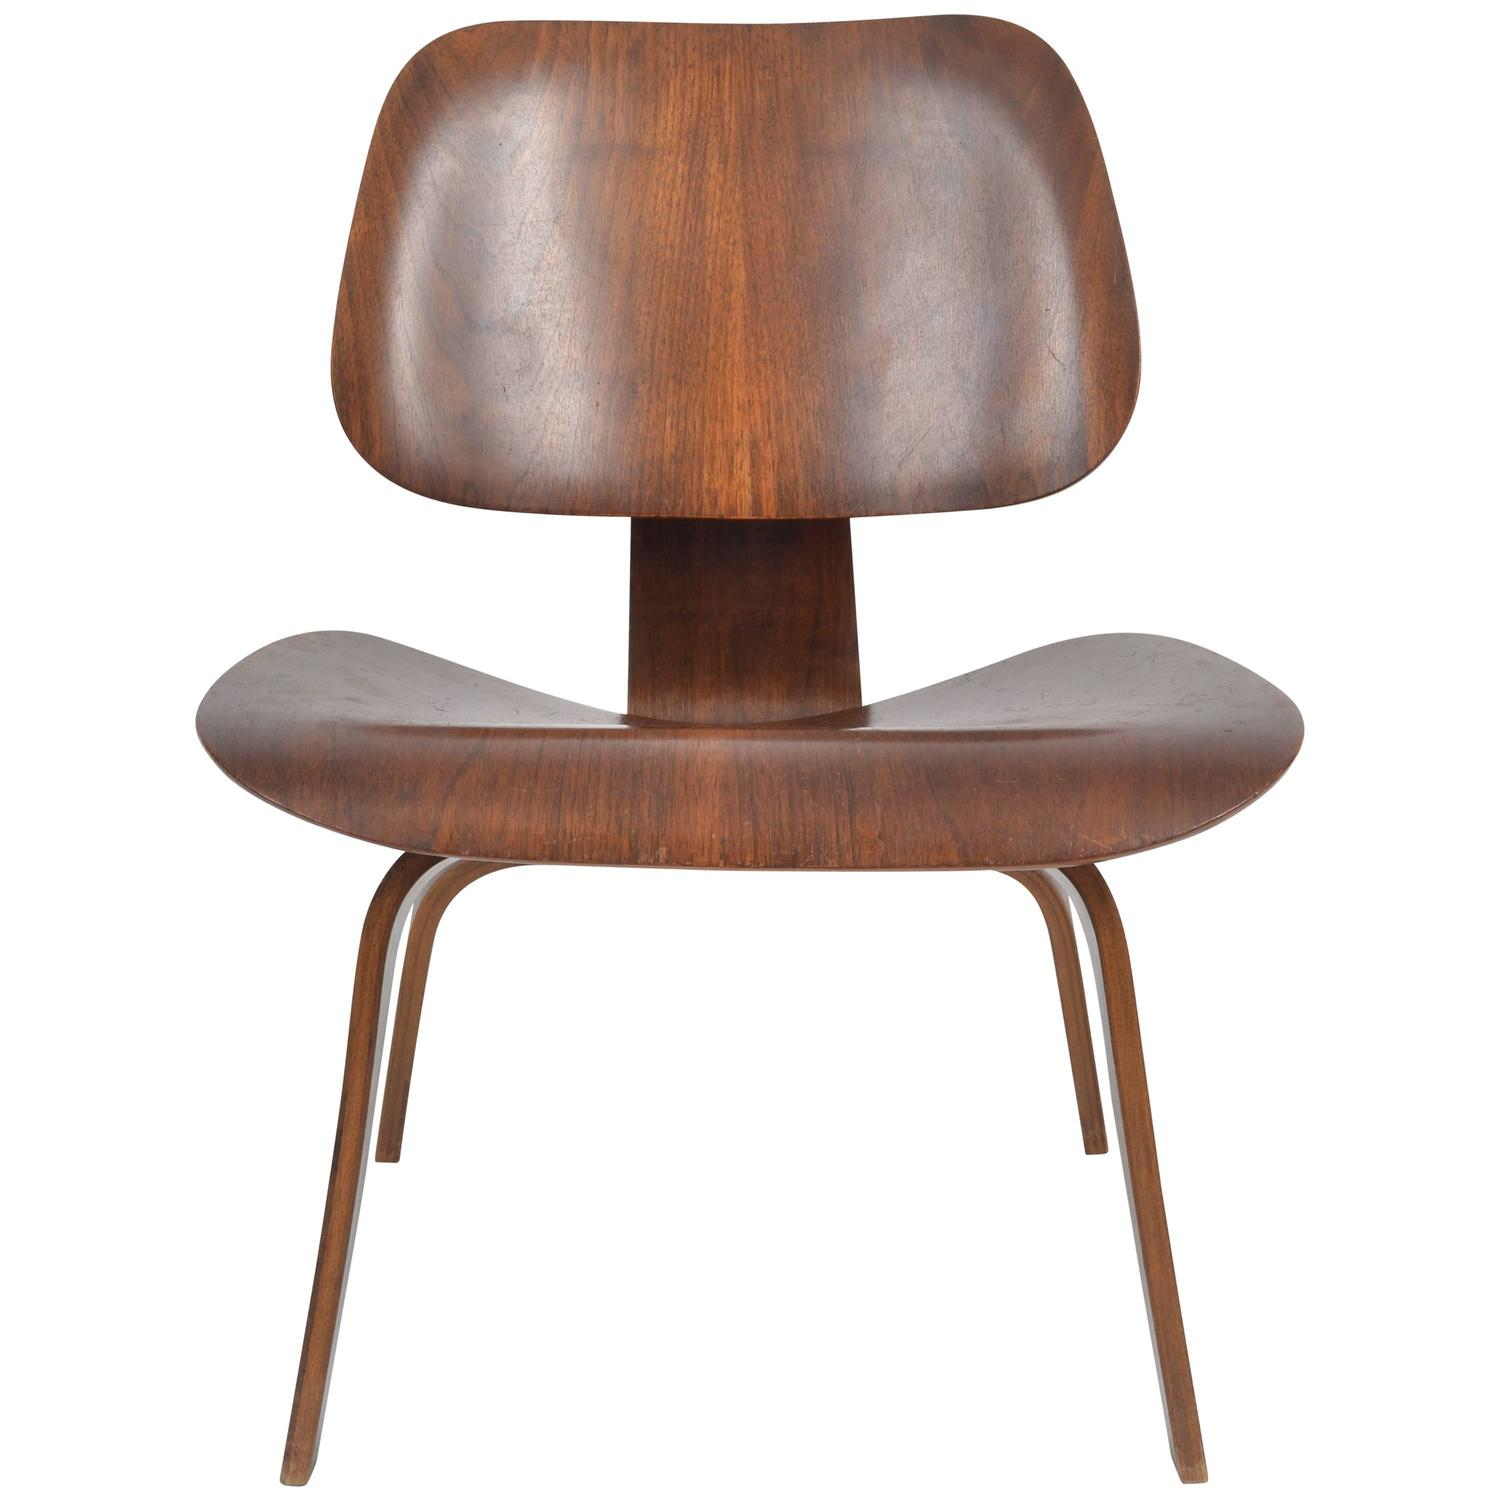 Herman Miller Walnut Evans LCW Lounge Chair by Charles and Ray